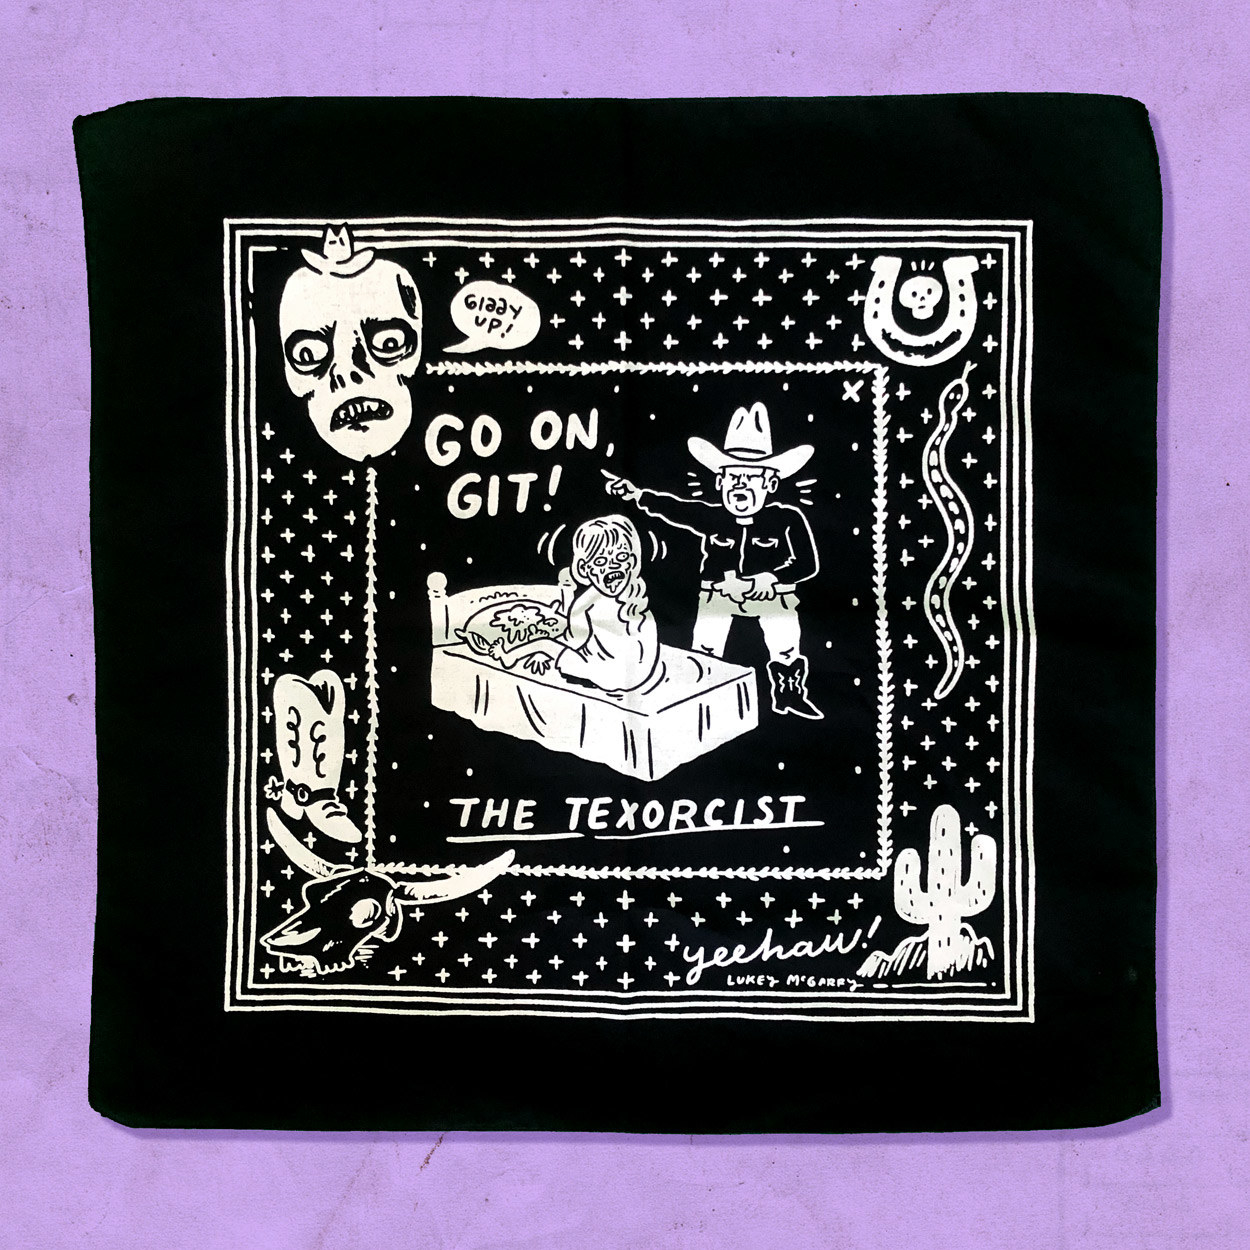 "square black bandana with a cartoon on it of the Exorcist scene from the movie with the little girl's head spinning around and a cowboy saying ""Go on Git"""